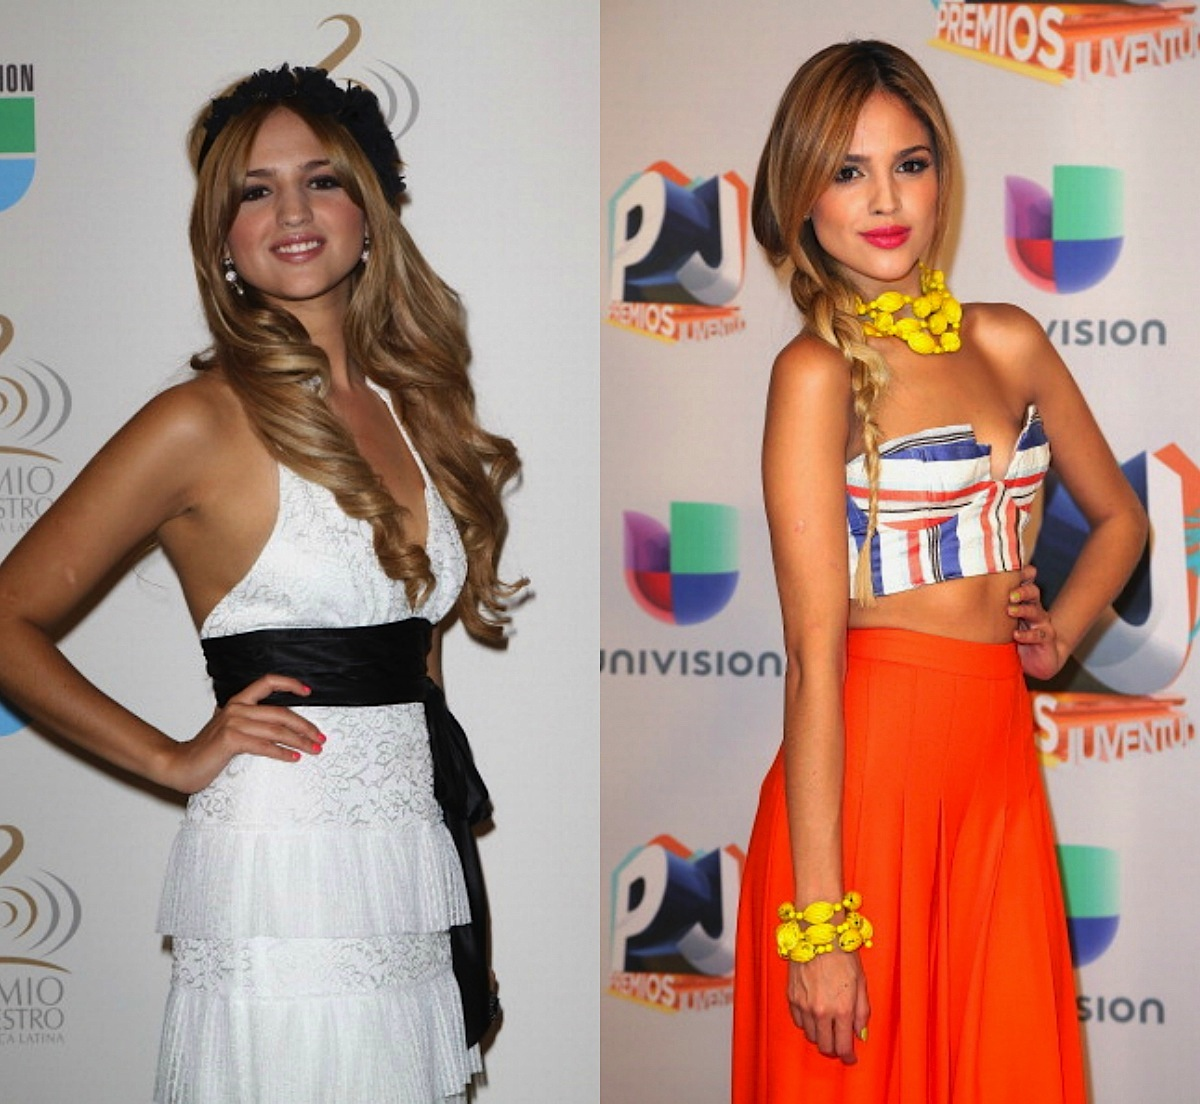 eizagonzalesplasticsurgery Is Liam Hemsworths New Lady Addicted To Plastic Surgery? See Eiza Gonzálezs Before and After Photos